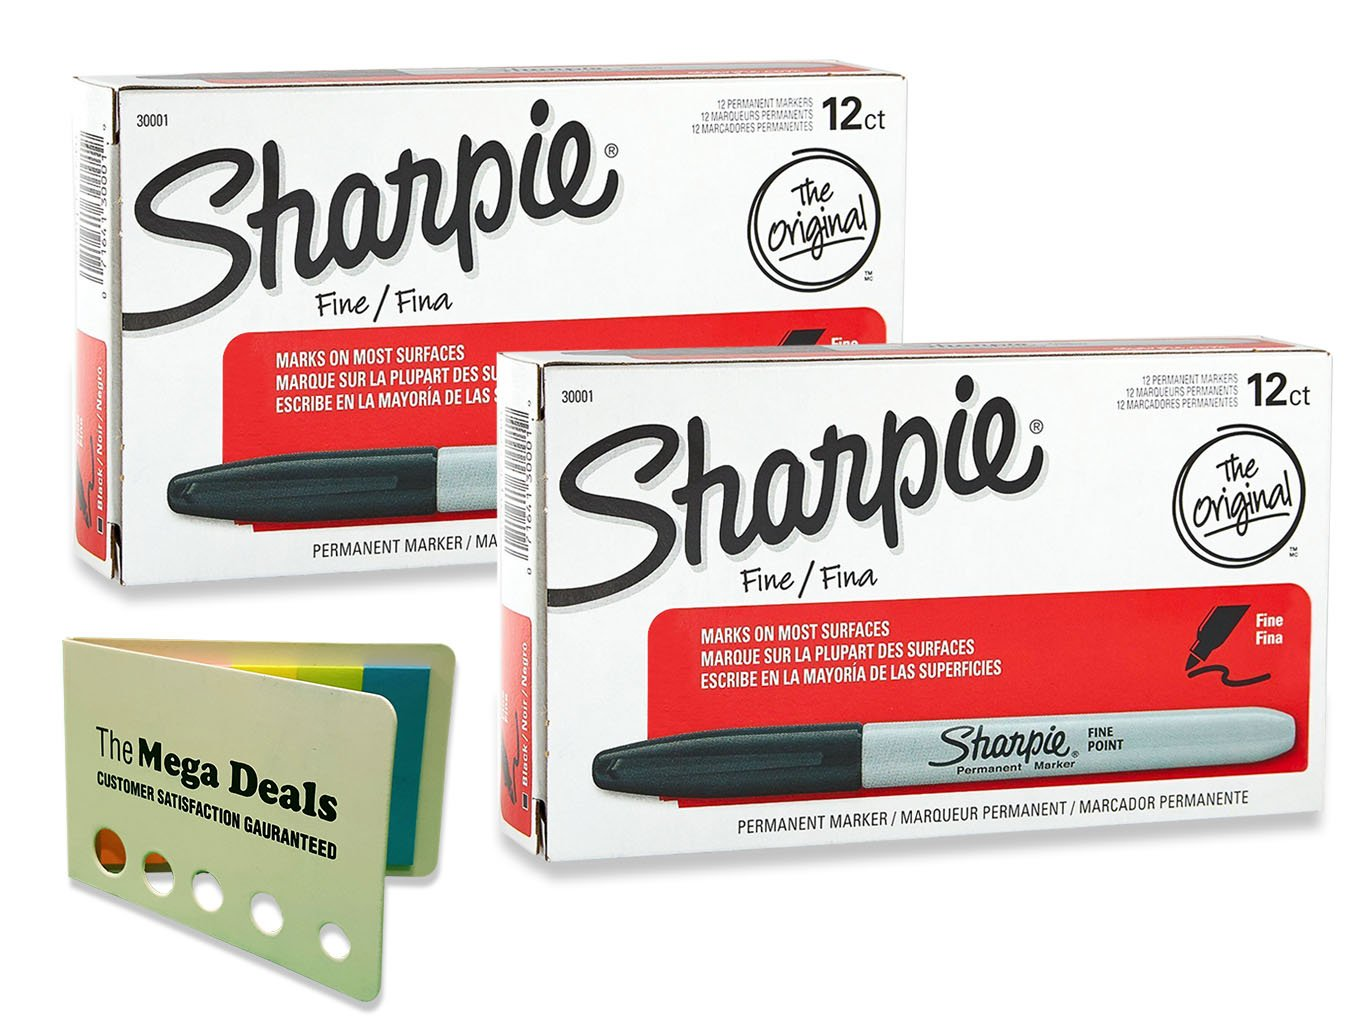 Sharpie Fine Point Permanent Markers, 24 Markers (2 X Box's of 12), Black, Includes 5 Color Flag Set